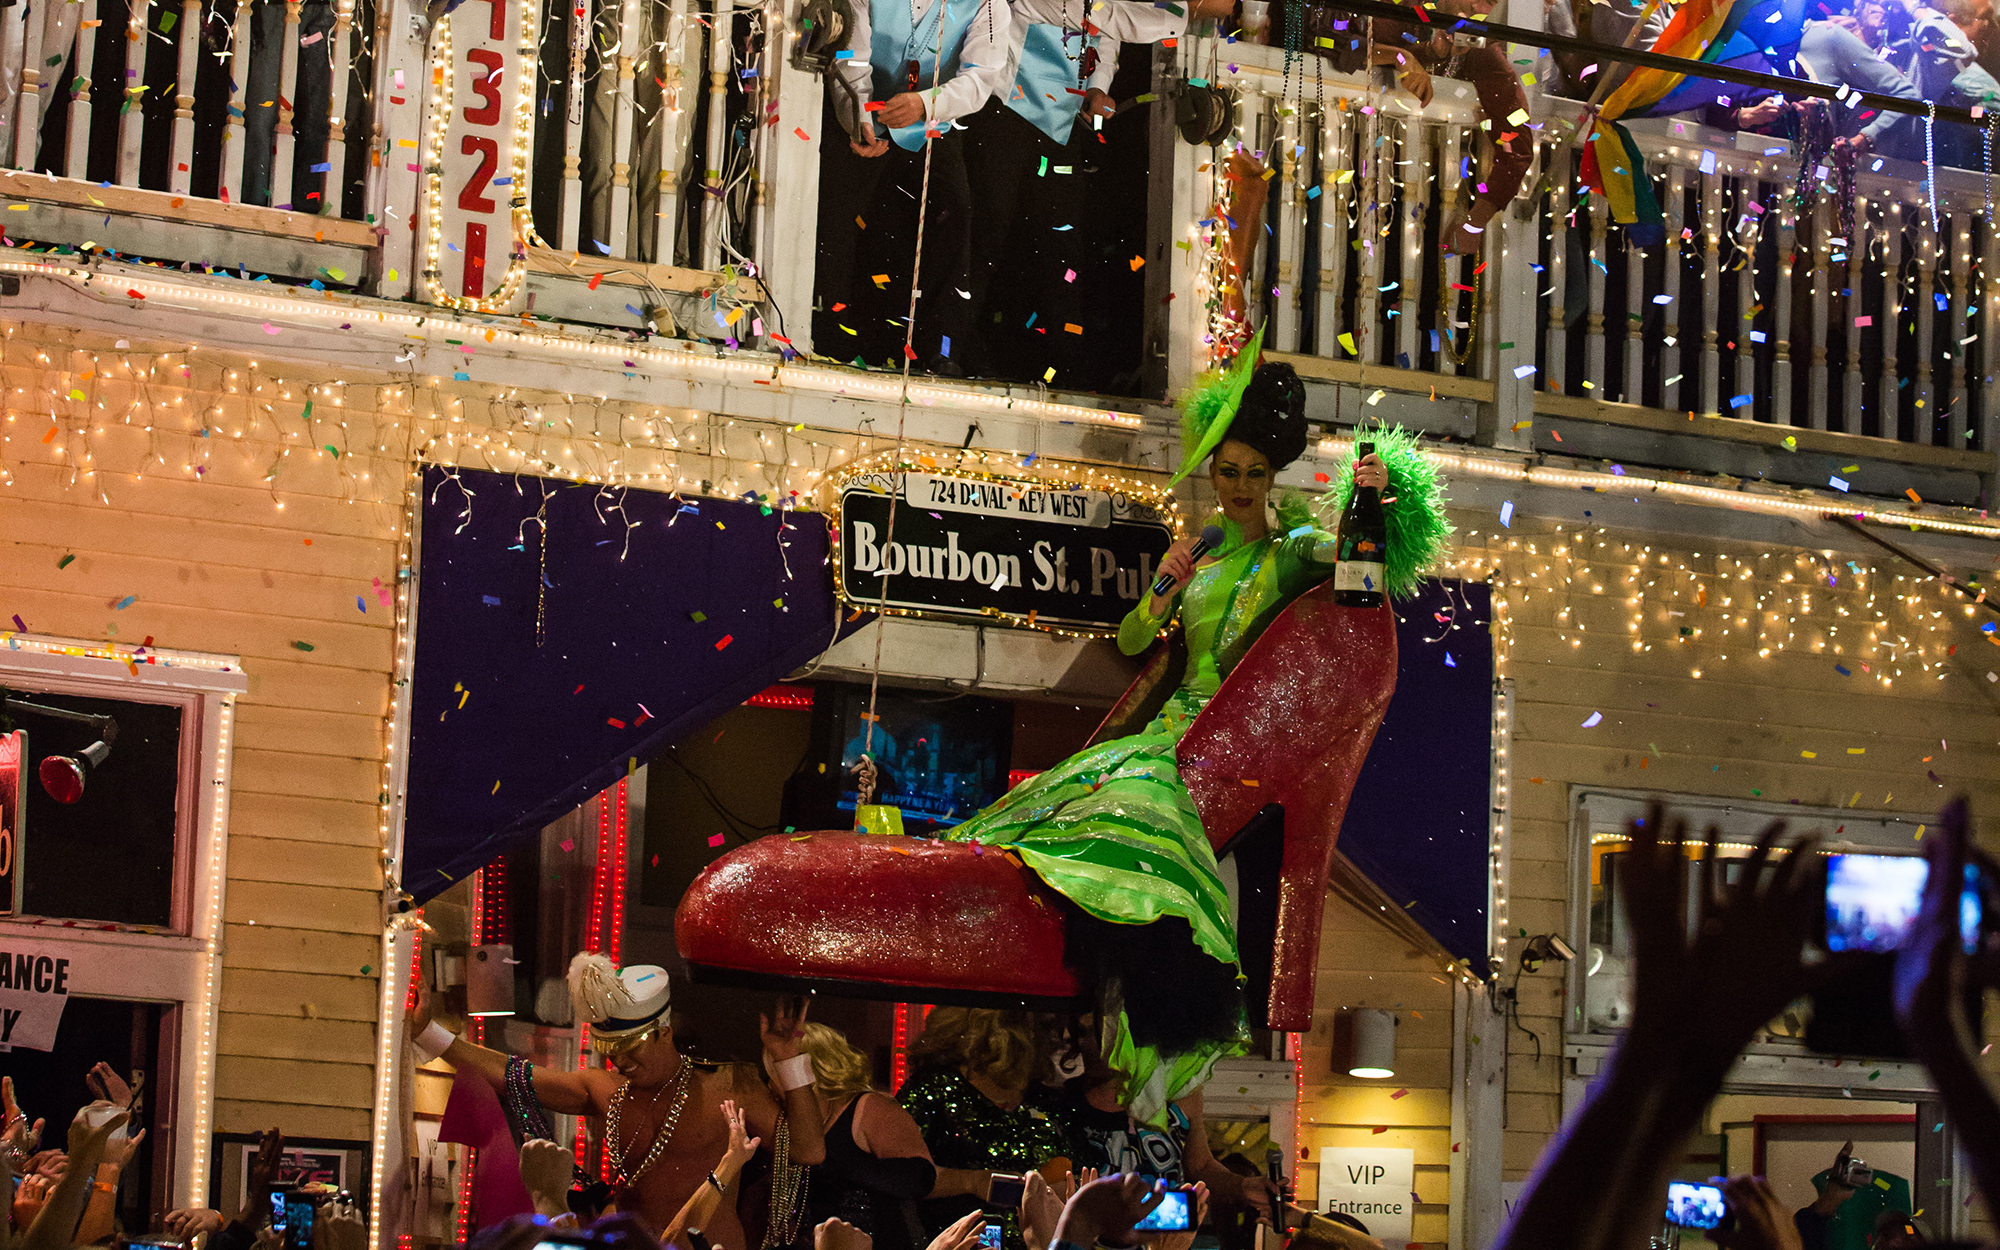 Key West Bourbon Street shoe drop